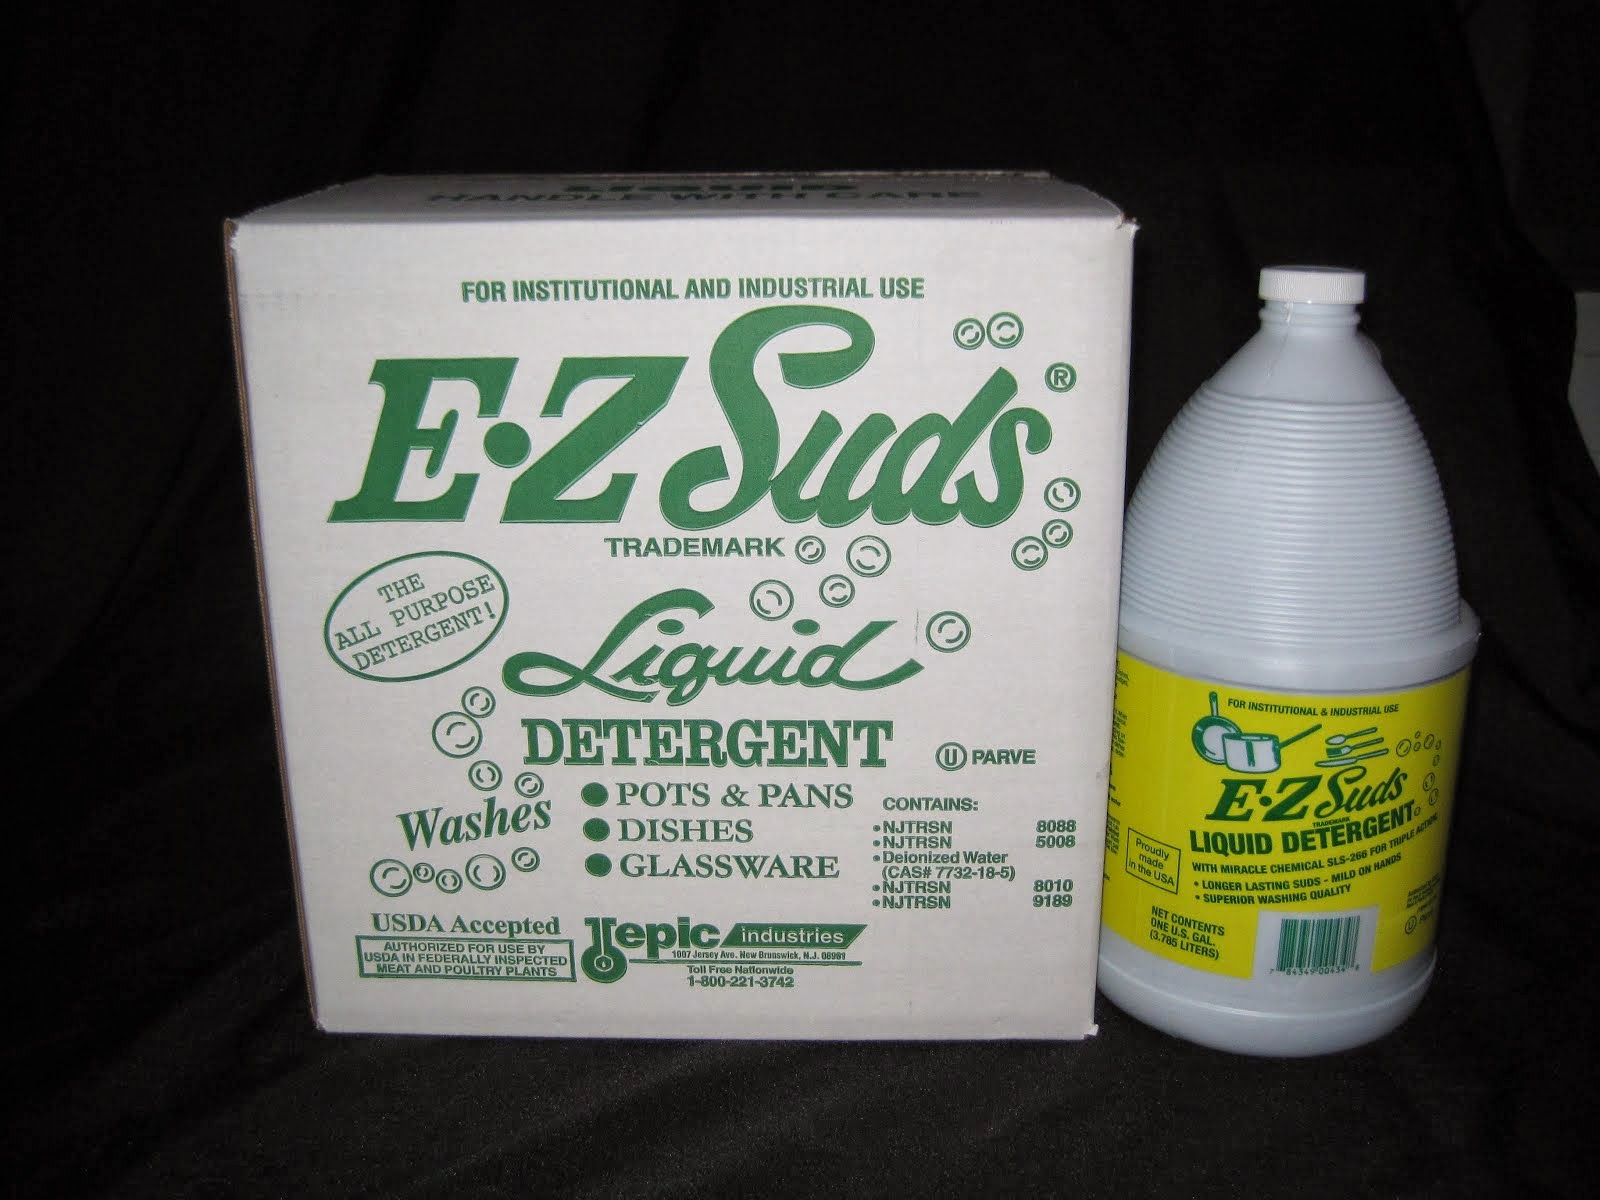 E-Z Suds Pot & pan Soap 4/1 gal - Item # 68250 & 68251 for the split